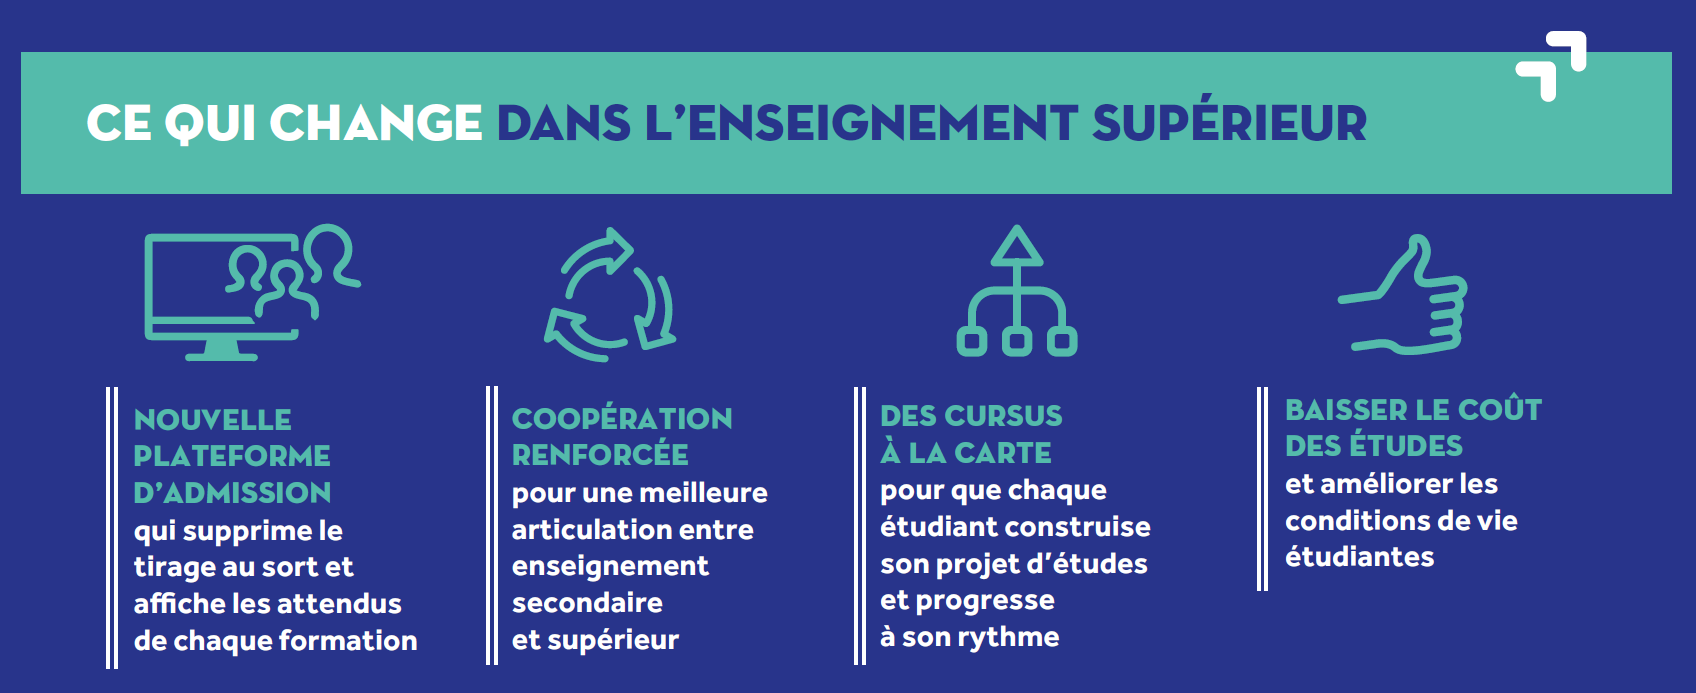 Part of an infographic about changes in the higher education sector (higher education reform in France 2017/18)